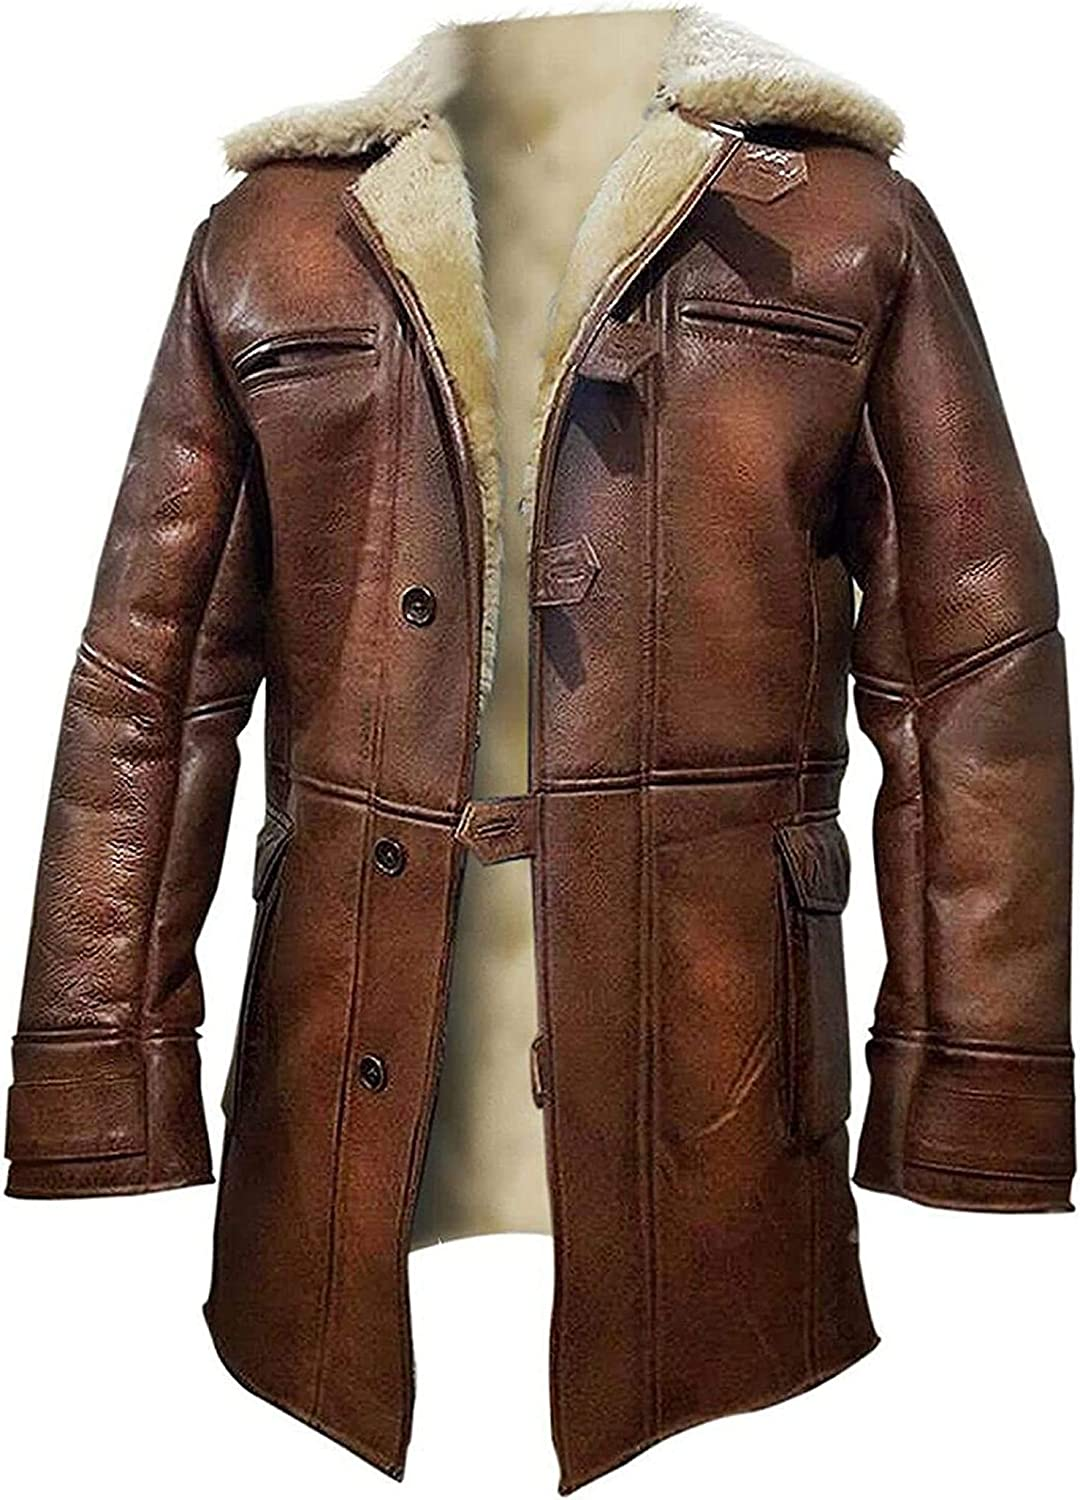 LP-FACON Mens Cosplay Hero Star Costume Leather Trench Coat Winter Collection